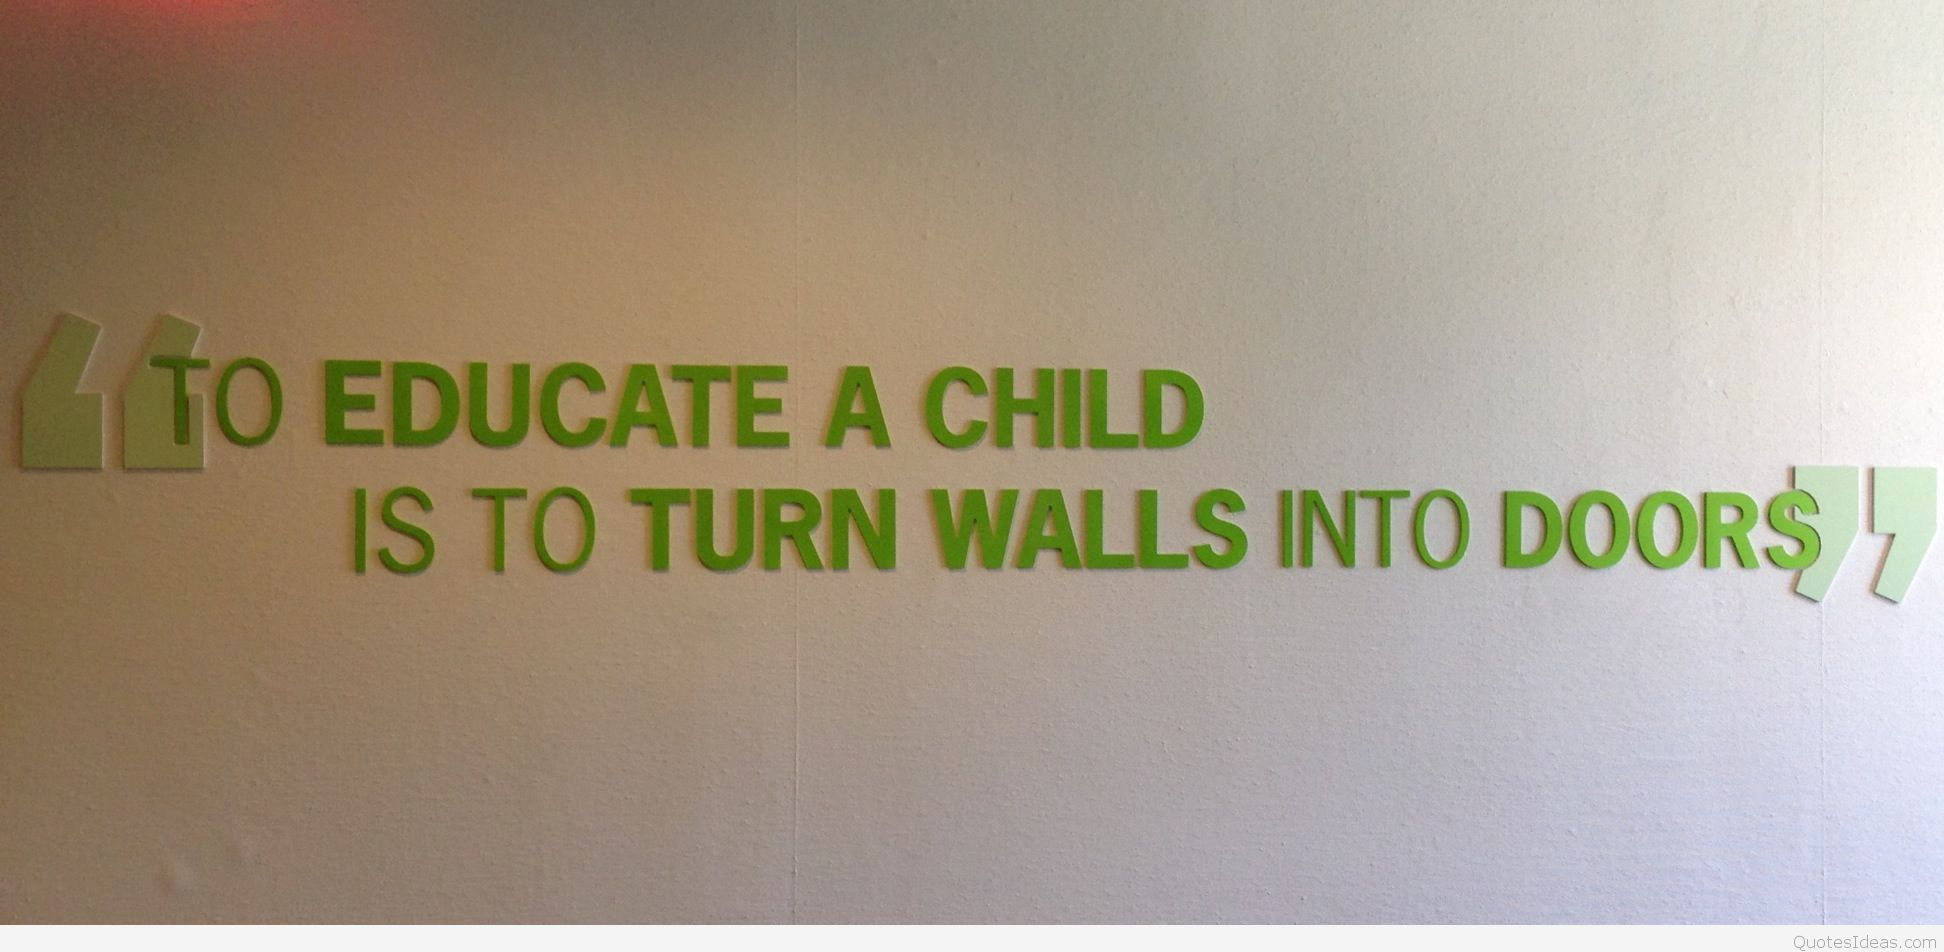 quotes about education of children quotes quotesideas com